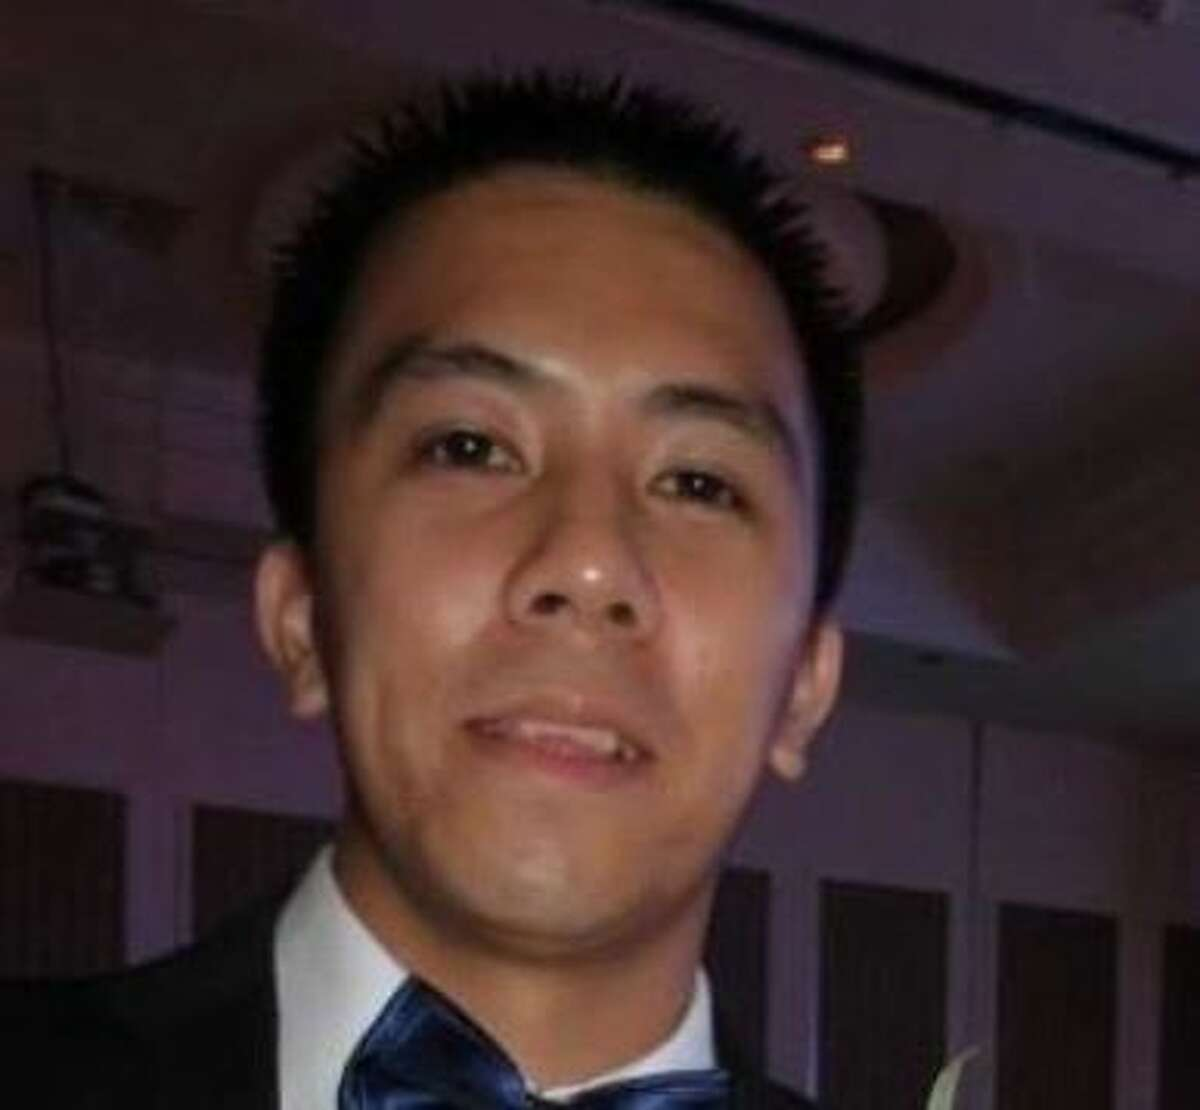 Rich Kim has been missing since Friday, Dec. 27, 2019, according to Texas Equusearch.